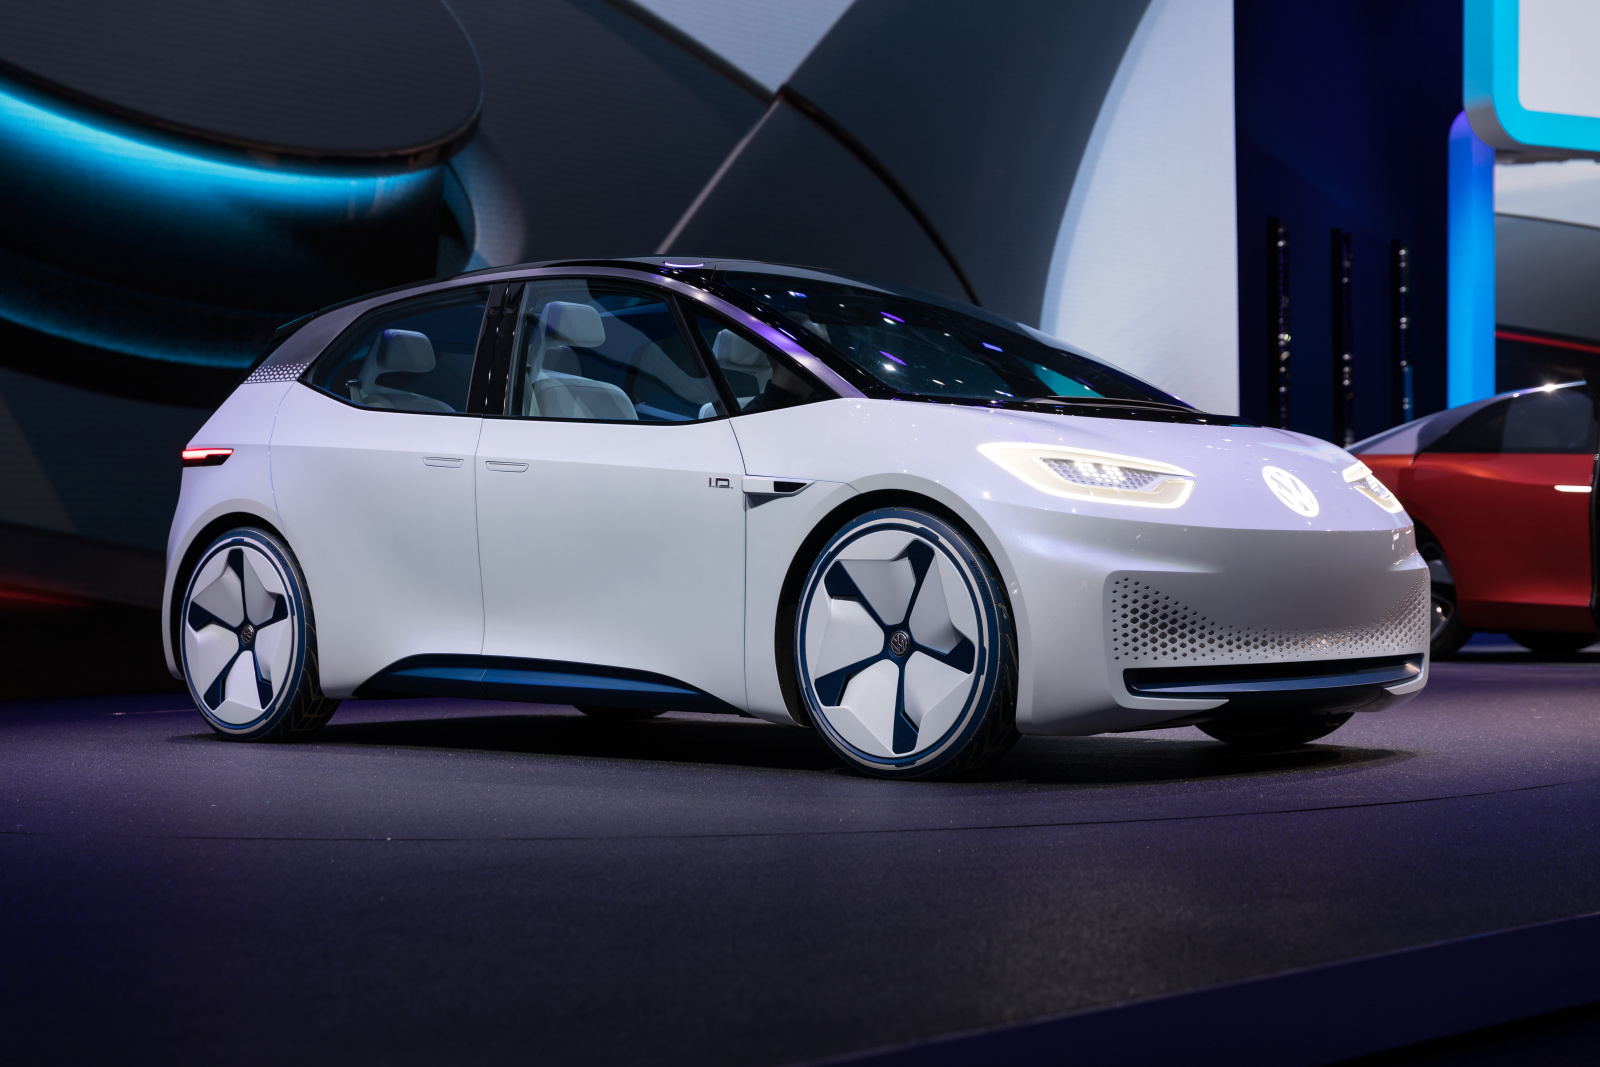 Volkswagen_Press_Conference,_GIMS_2018,_Le_Grand-Saconnex_(1X7A9938).jpg